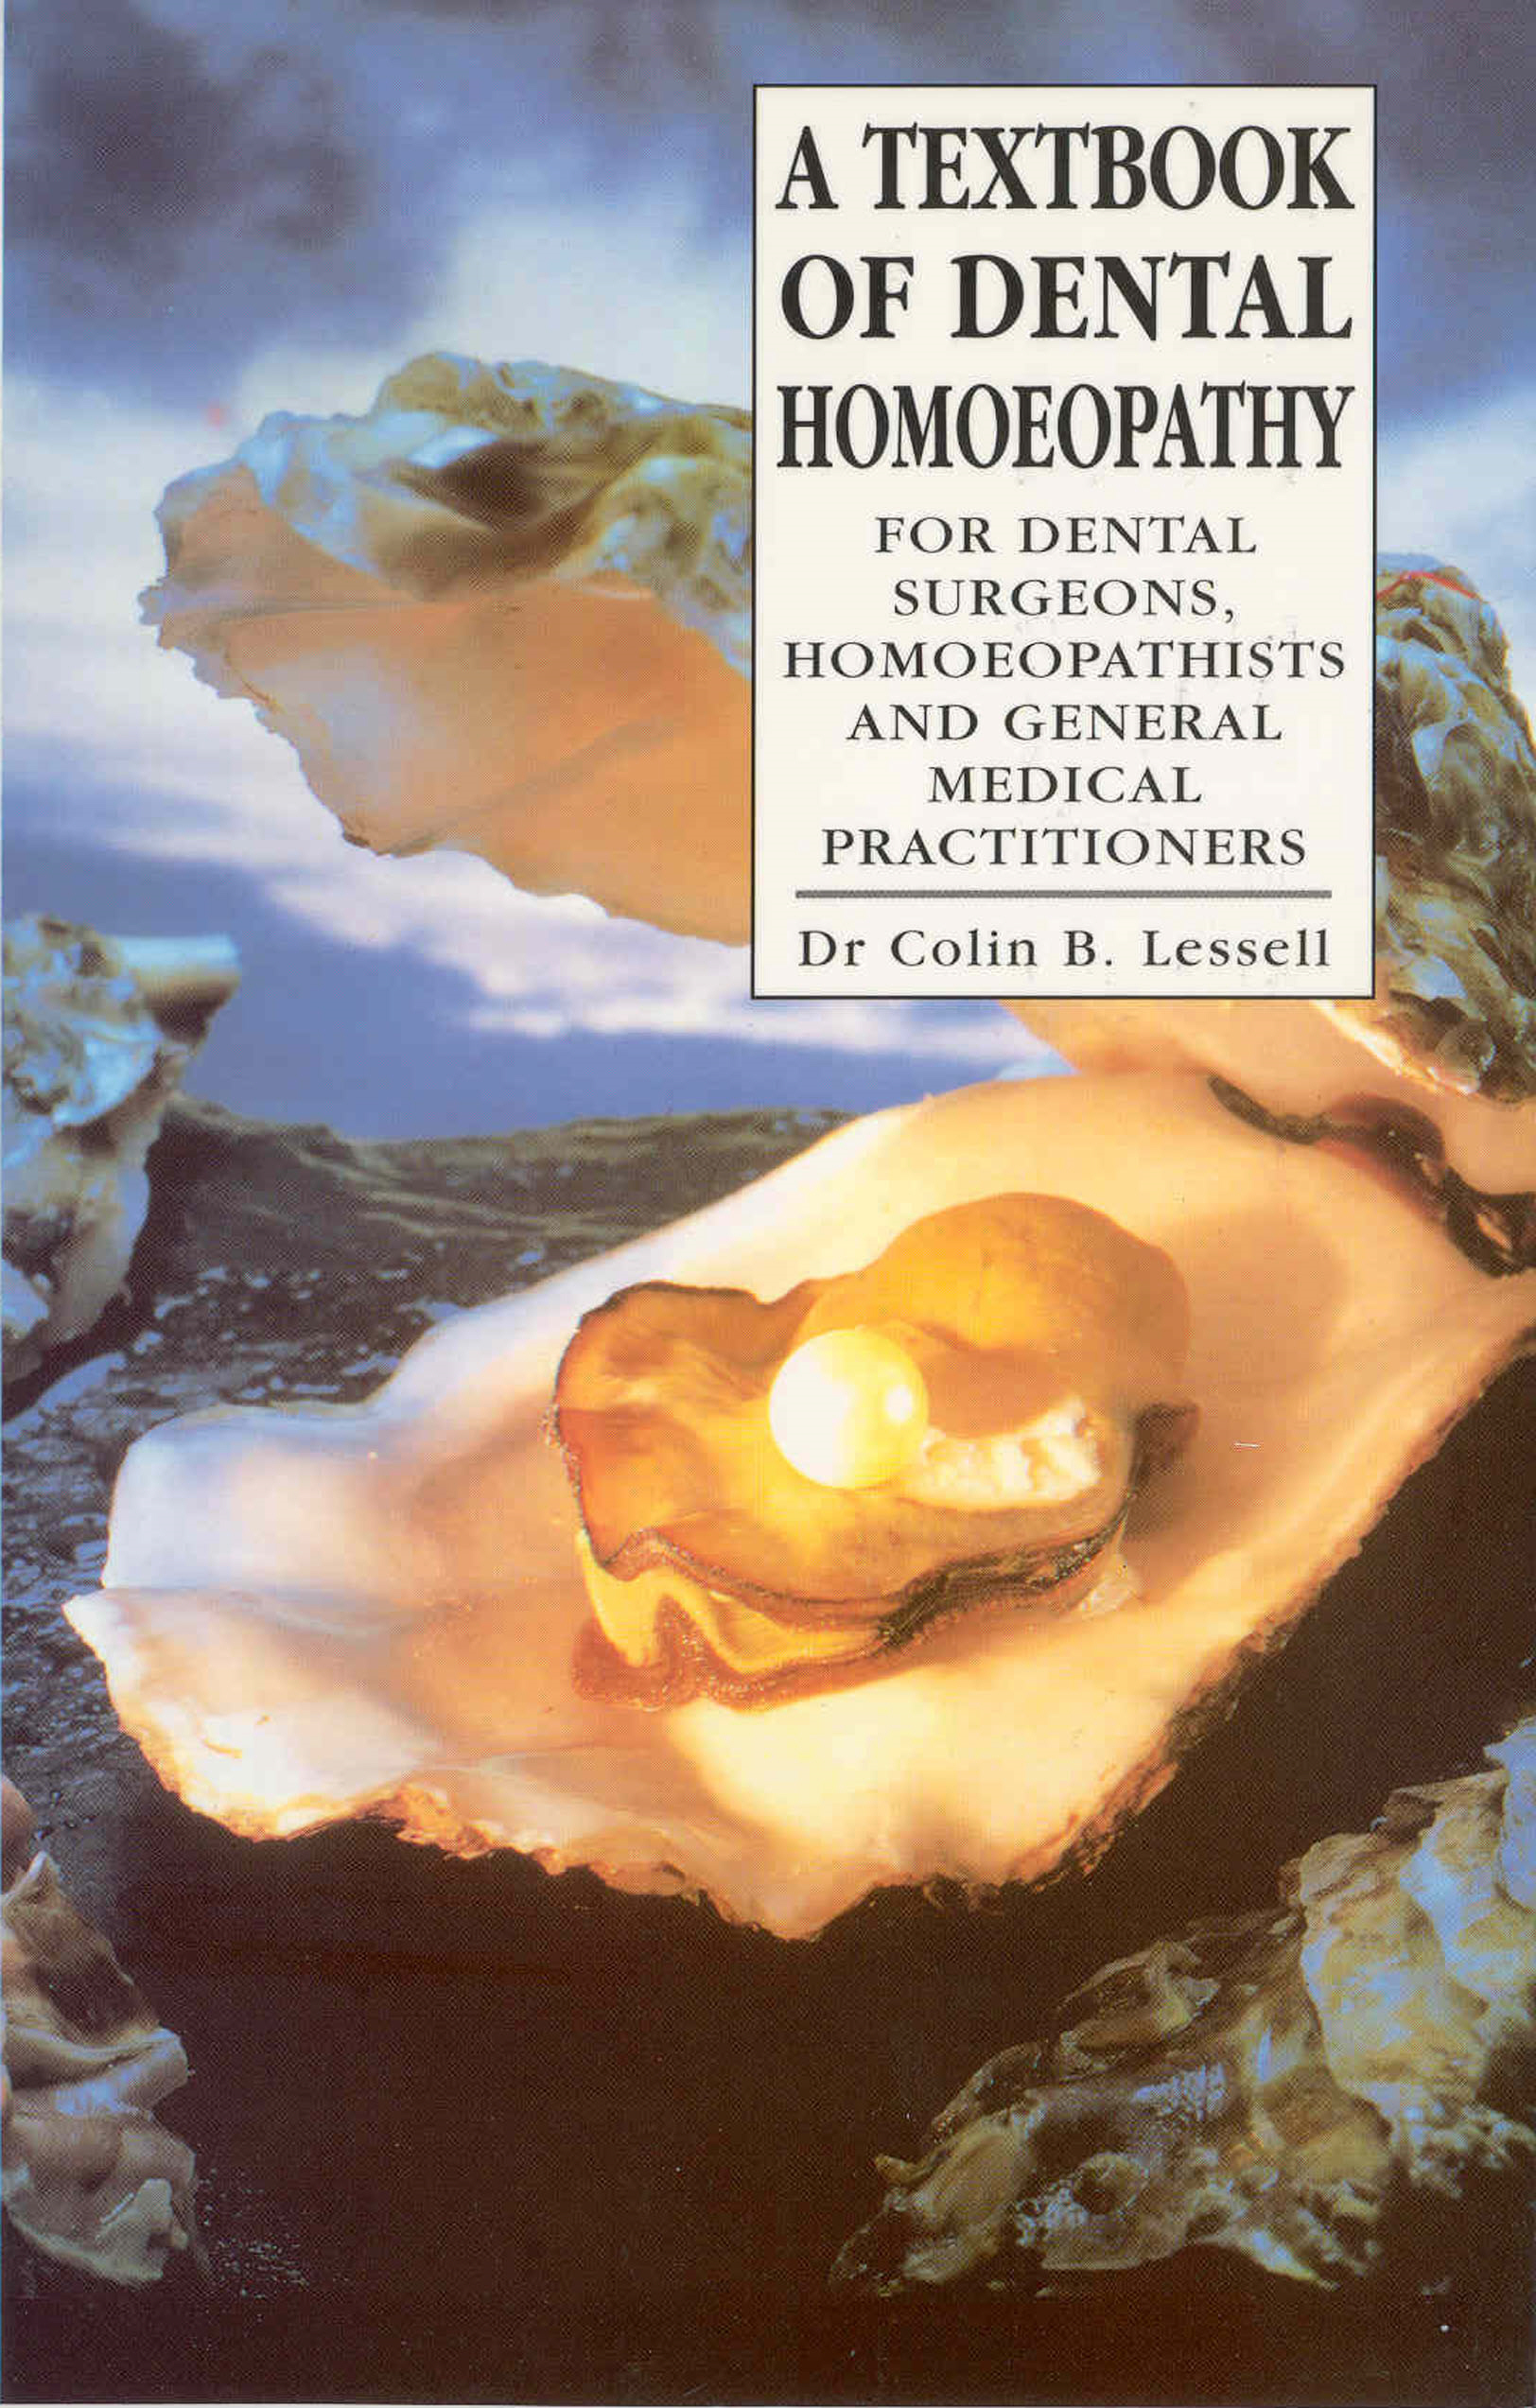 A Textbook Of Dental Homoeopathy For Dental Surgeons,  Homoeopathists and General Medical Practitioners